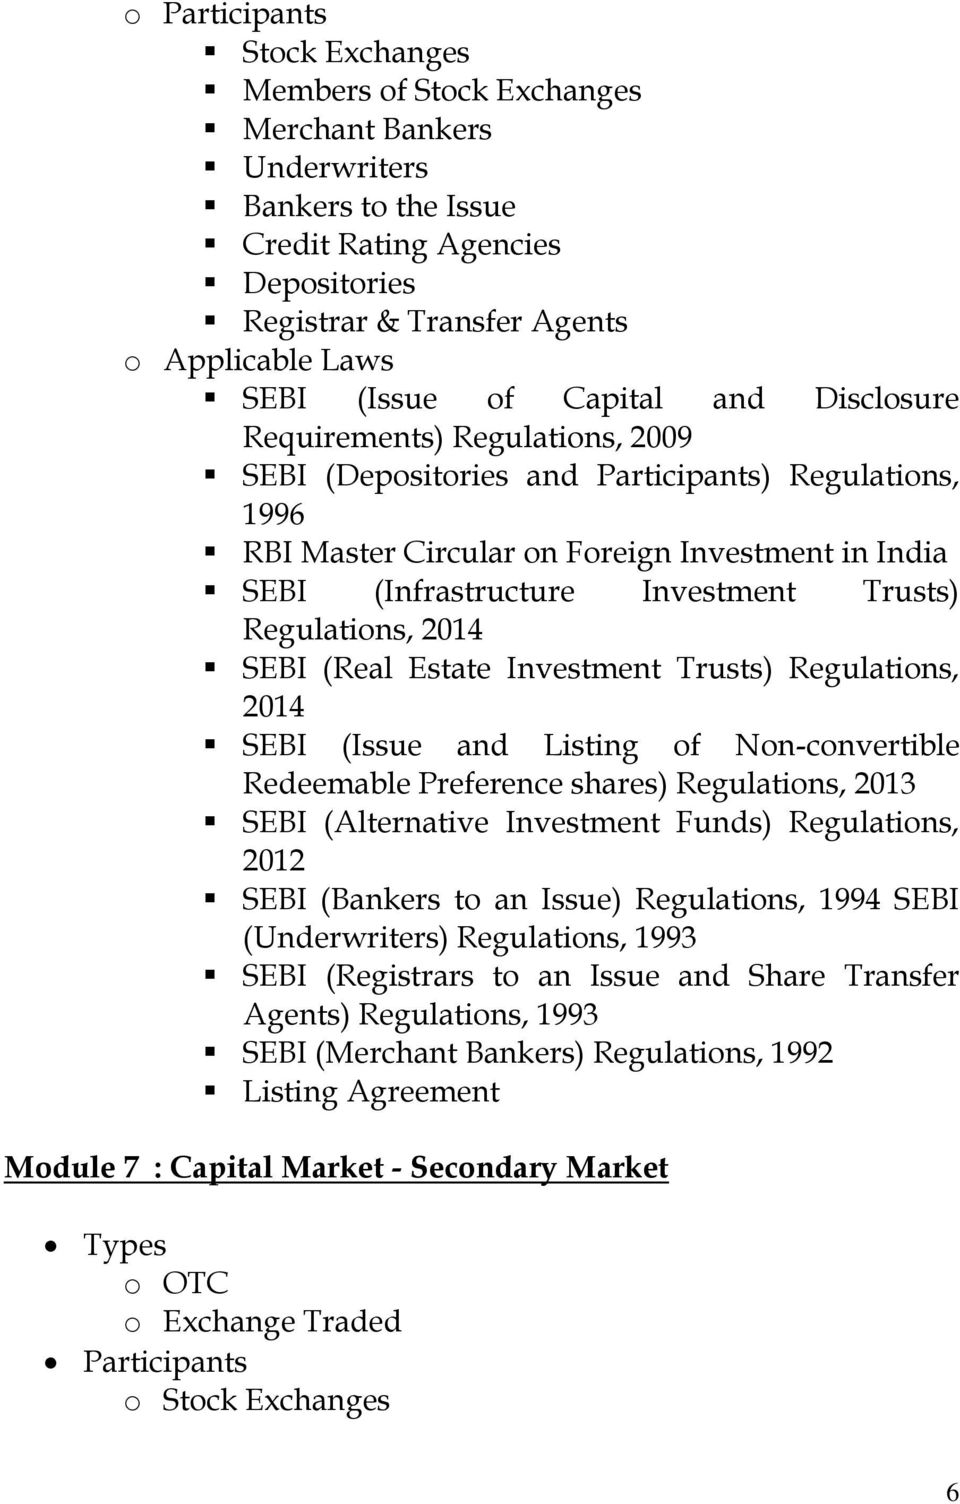 Investment Trusts) Regulations, 2014 SEBI (Real Estate Investment Trusts) Regulations, 2014 SEBI (Issue and Listing of Non-convertible Redeemable Preference shares) Regulations, 2013 SEBI